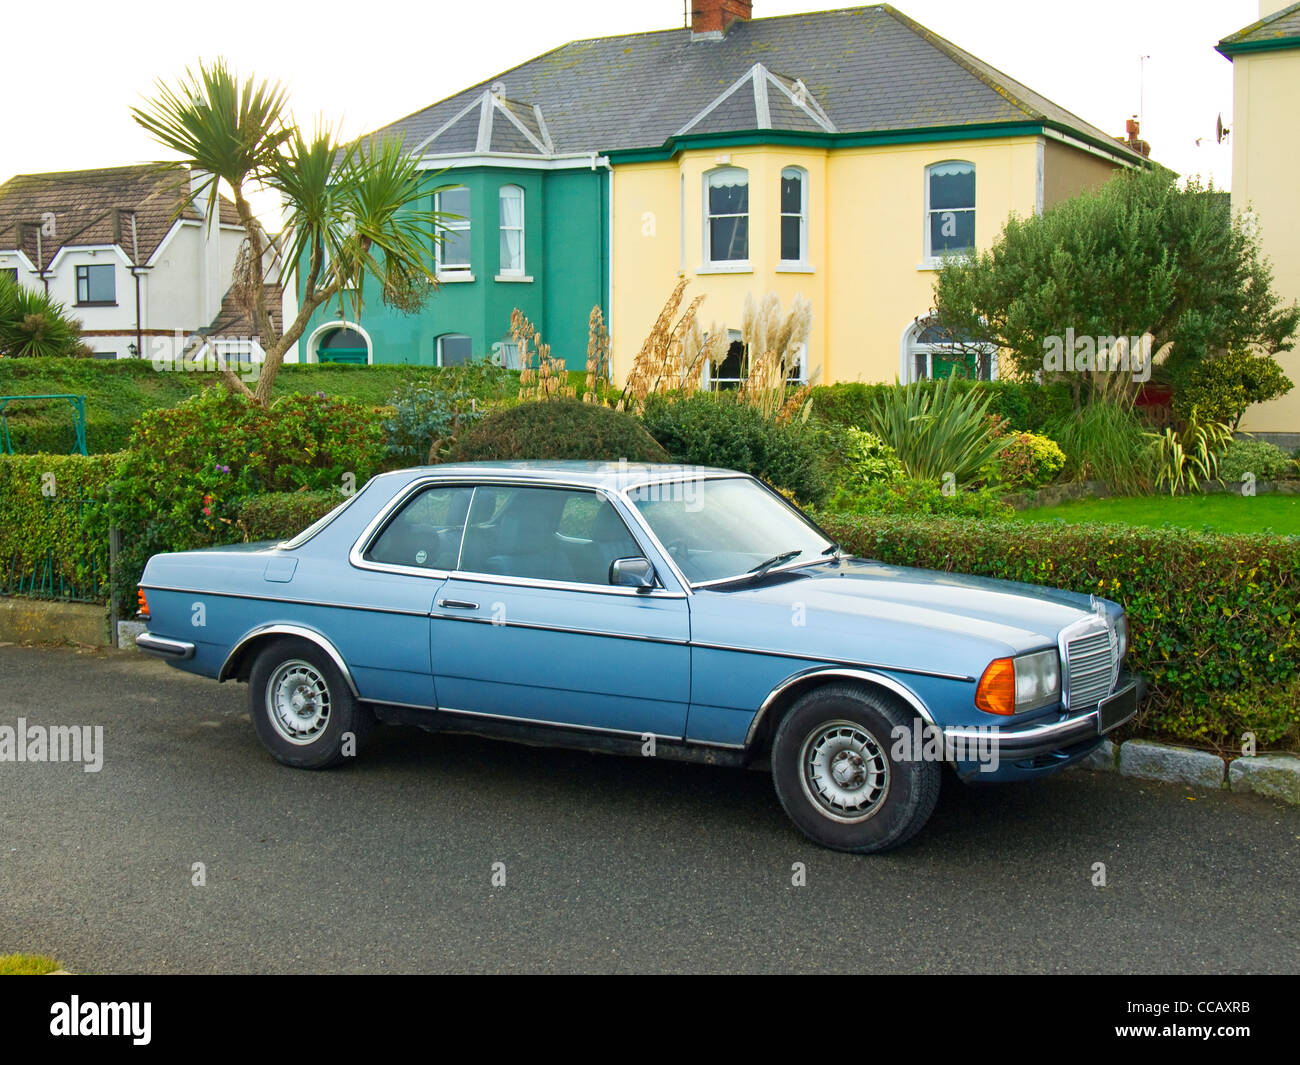 A 1985 registered Mercedes Benz 230 CE saloon car in excellent exterior condition - Stock Image